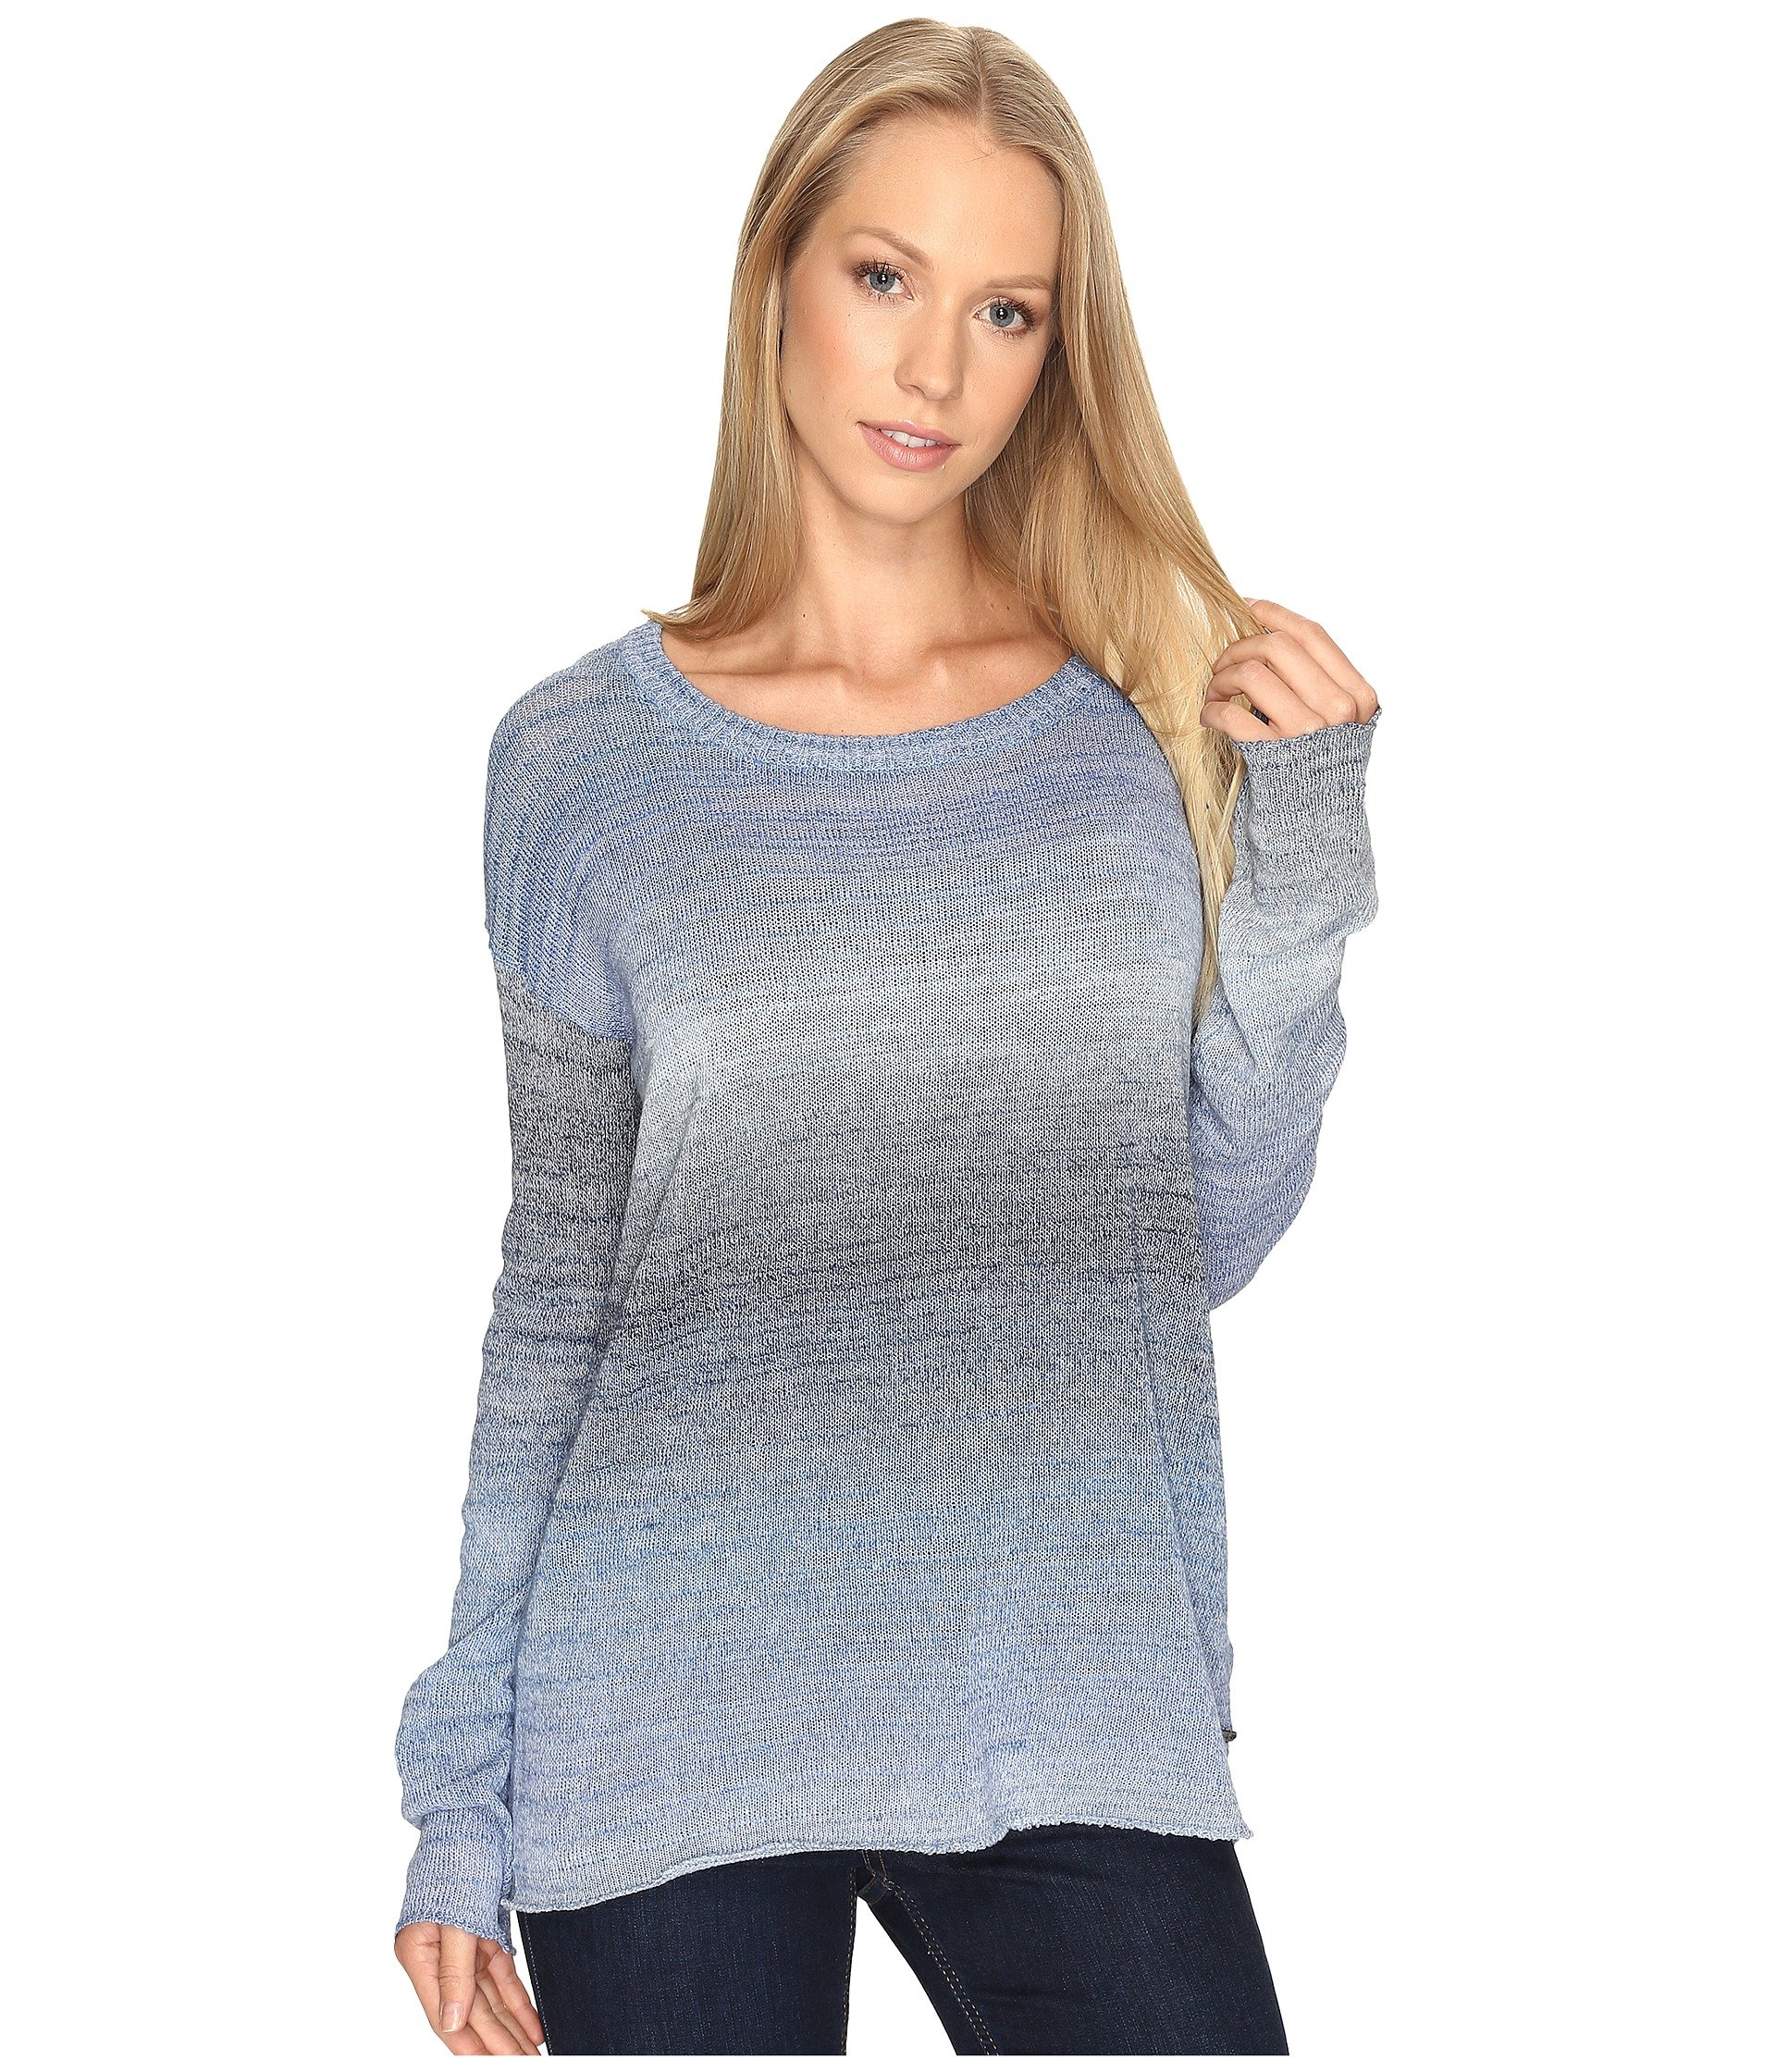 Nightingale Sweater, Indigo